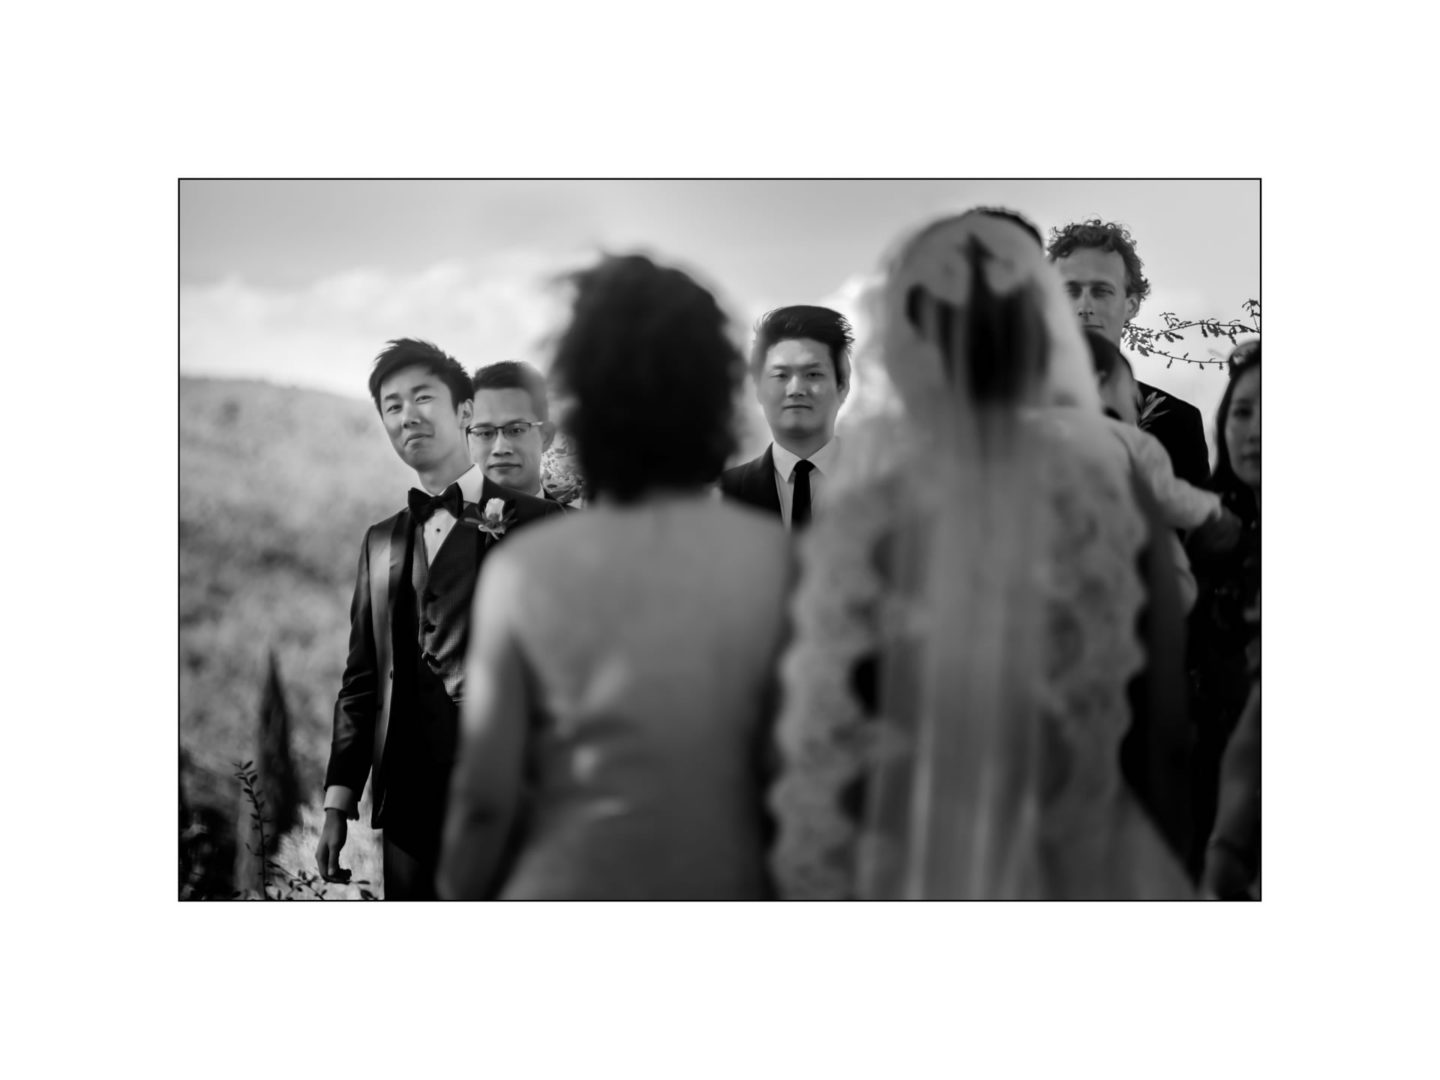 castello-di-meleto-david-bastianoni-photographer-00017 :: Black and white wedding_ Castello di Meleto :: Luxury wedding photography - 16 :: castello-di-meleto-david-bastianoni-photographer-00017